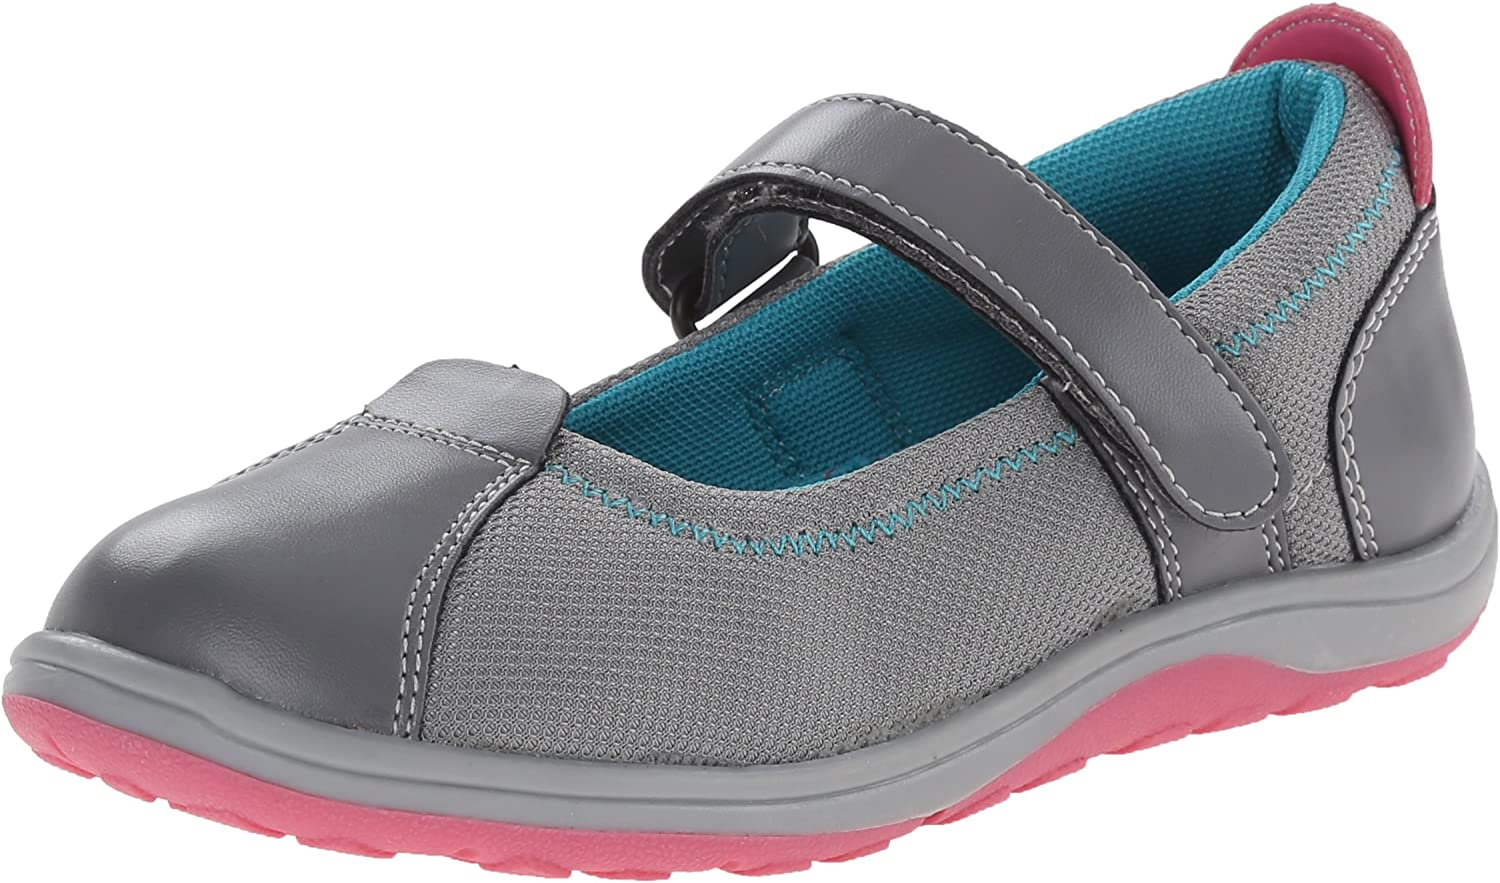 See Max 66% OFF Kai Run Millennium Washable Infant Mary Jane Challenge the lowest price of Japan ☆ Toddler